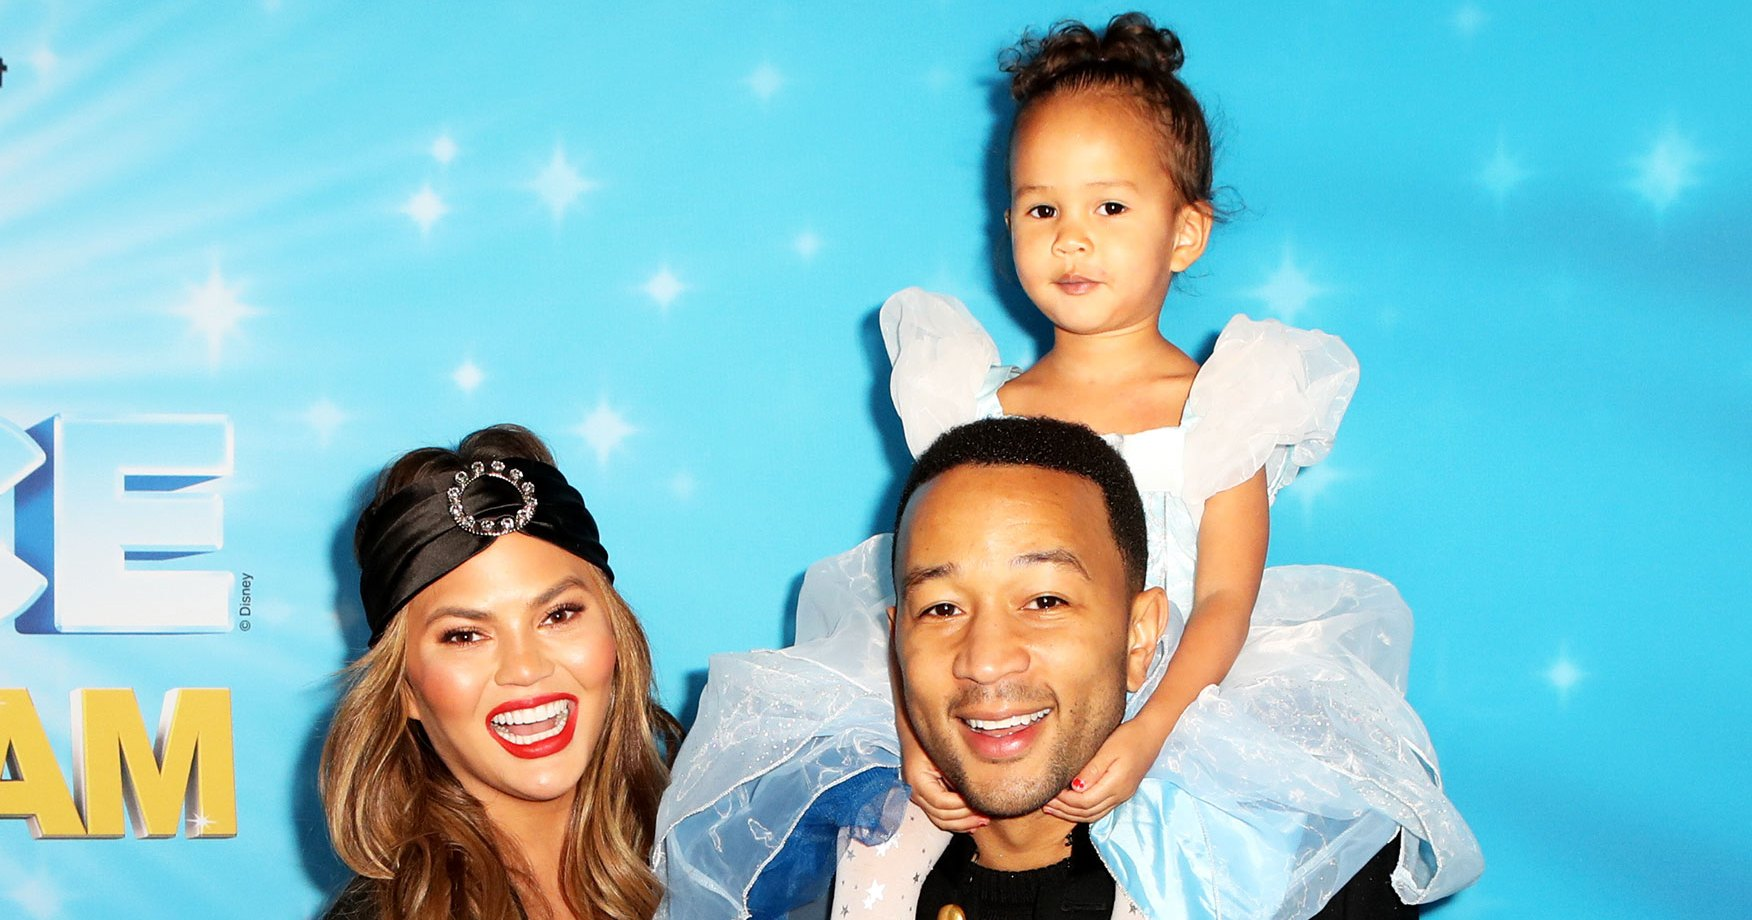 Chrissy Teigen, Daughter Luna Buy Pet Hamster Peanut Butter